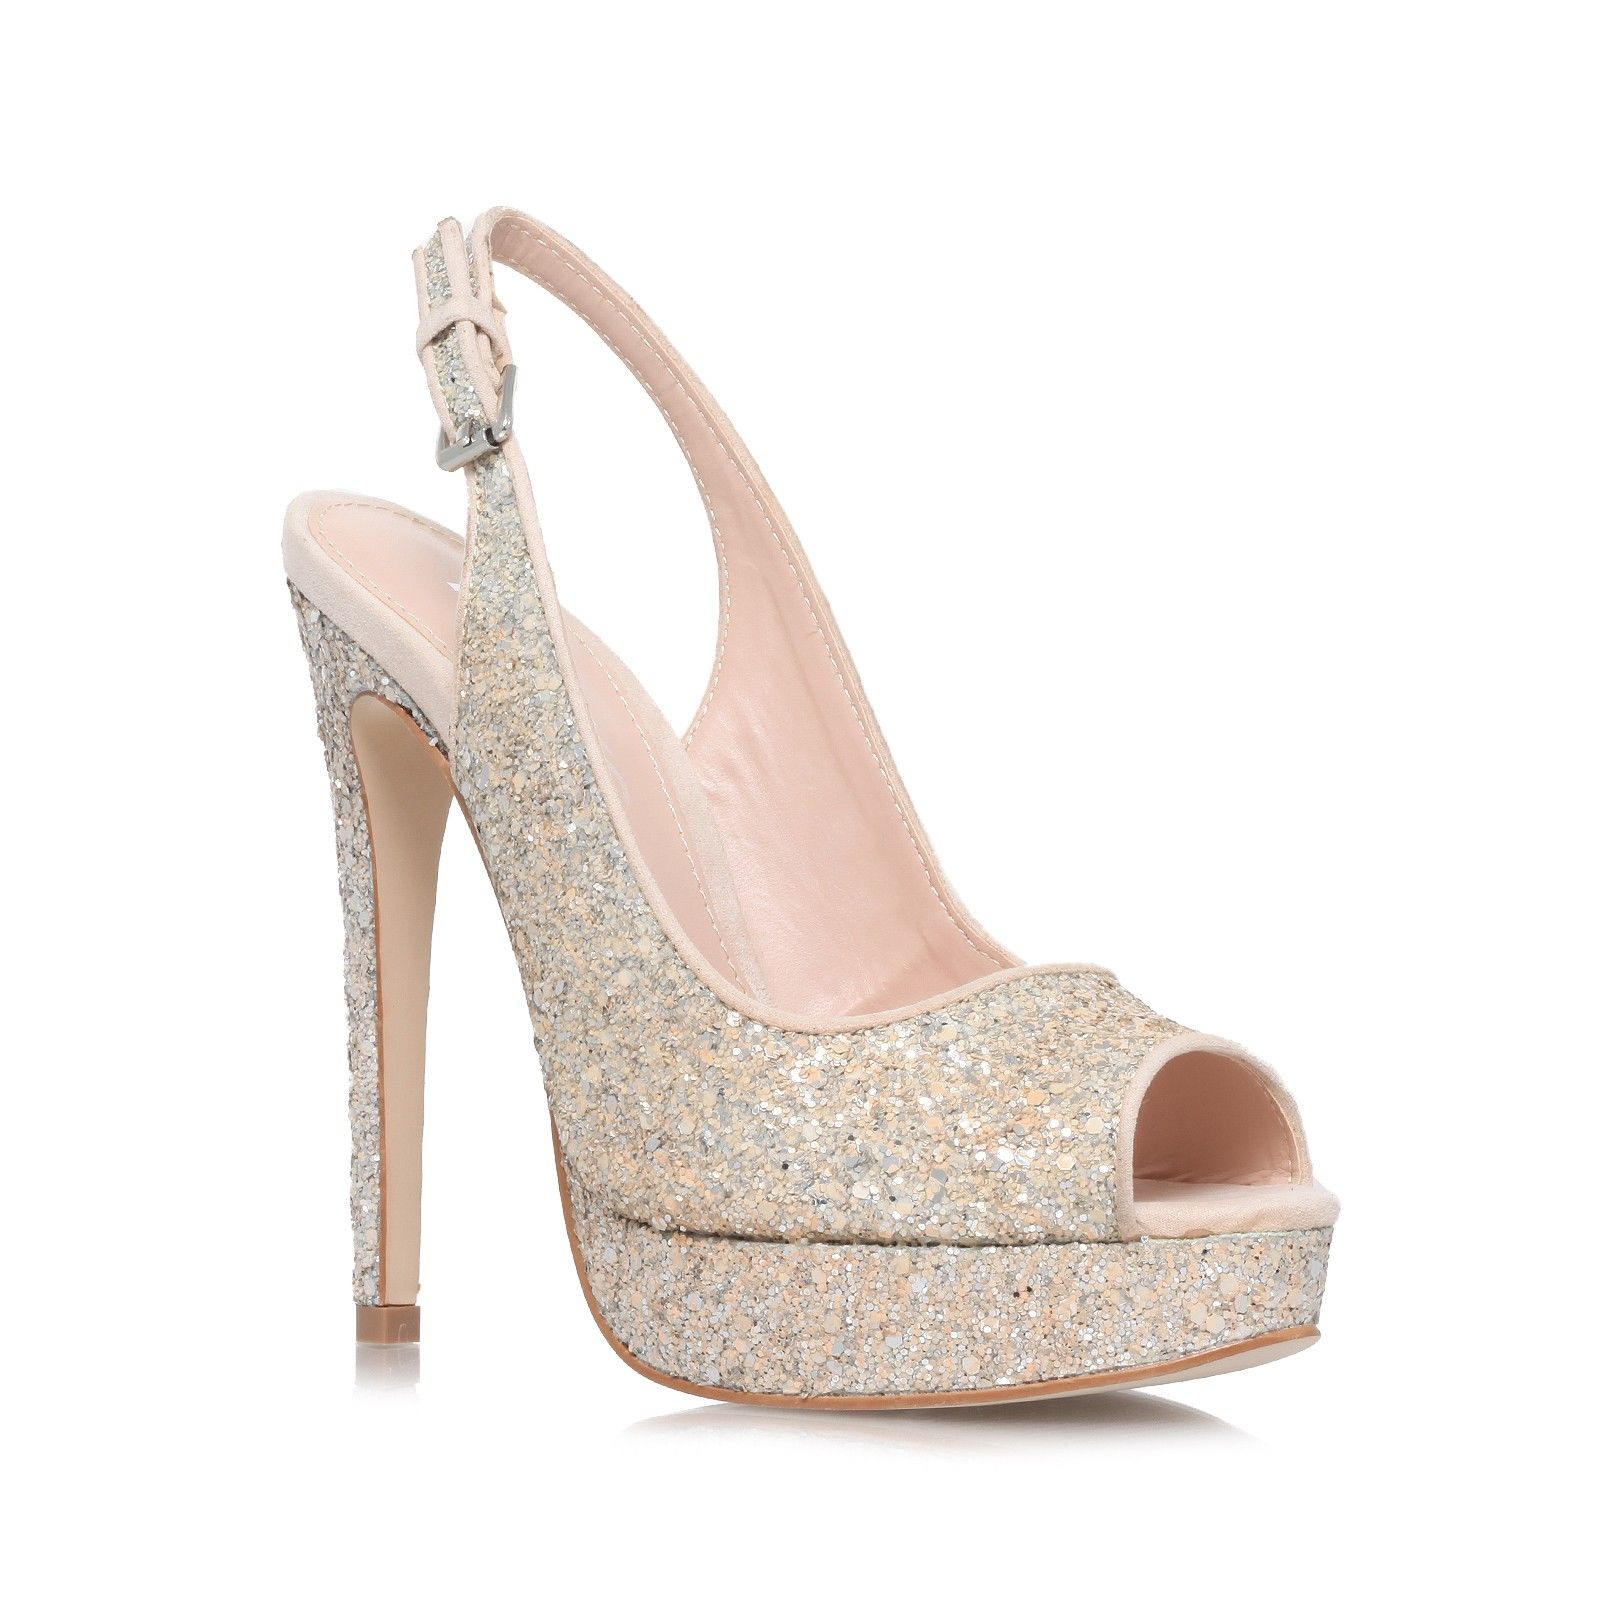 be22178e66b Kurt Geiger Miss KG Shoes - Esther I need these in my life right now!!!!!!   wedding  shoes  musthaveNOW